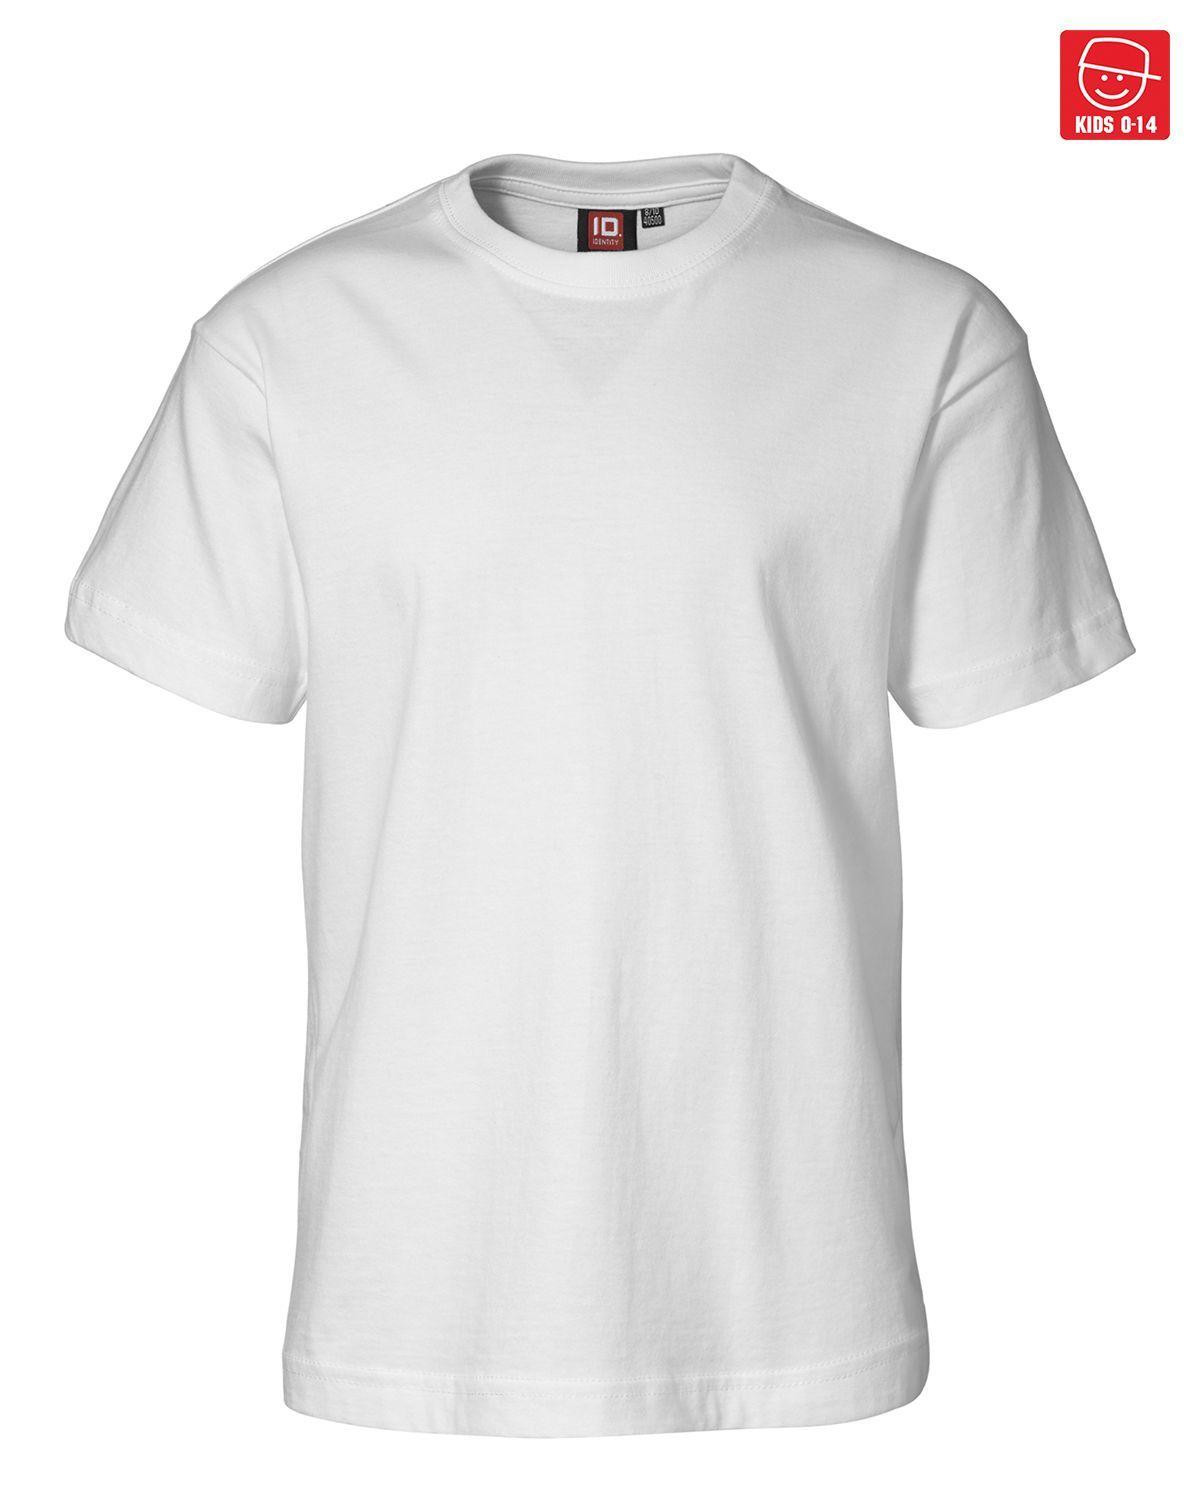 Image of   ID T-shirts (Hvid, 116)